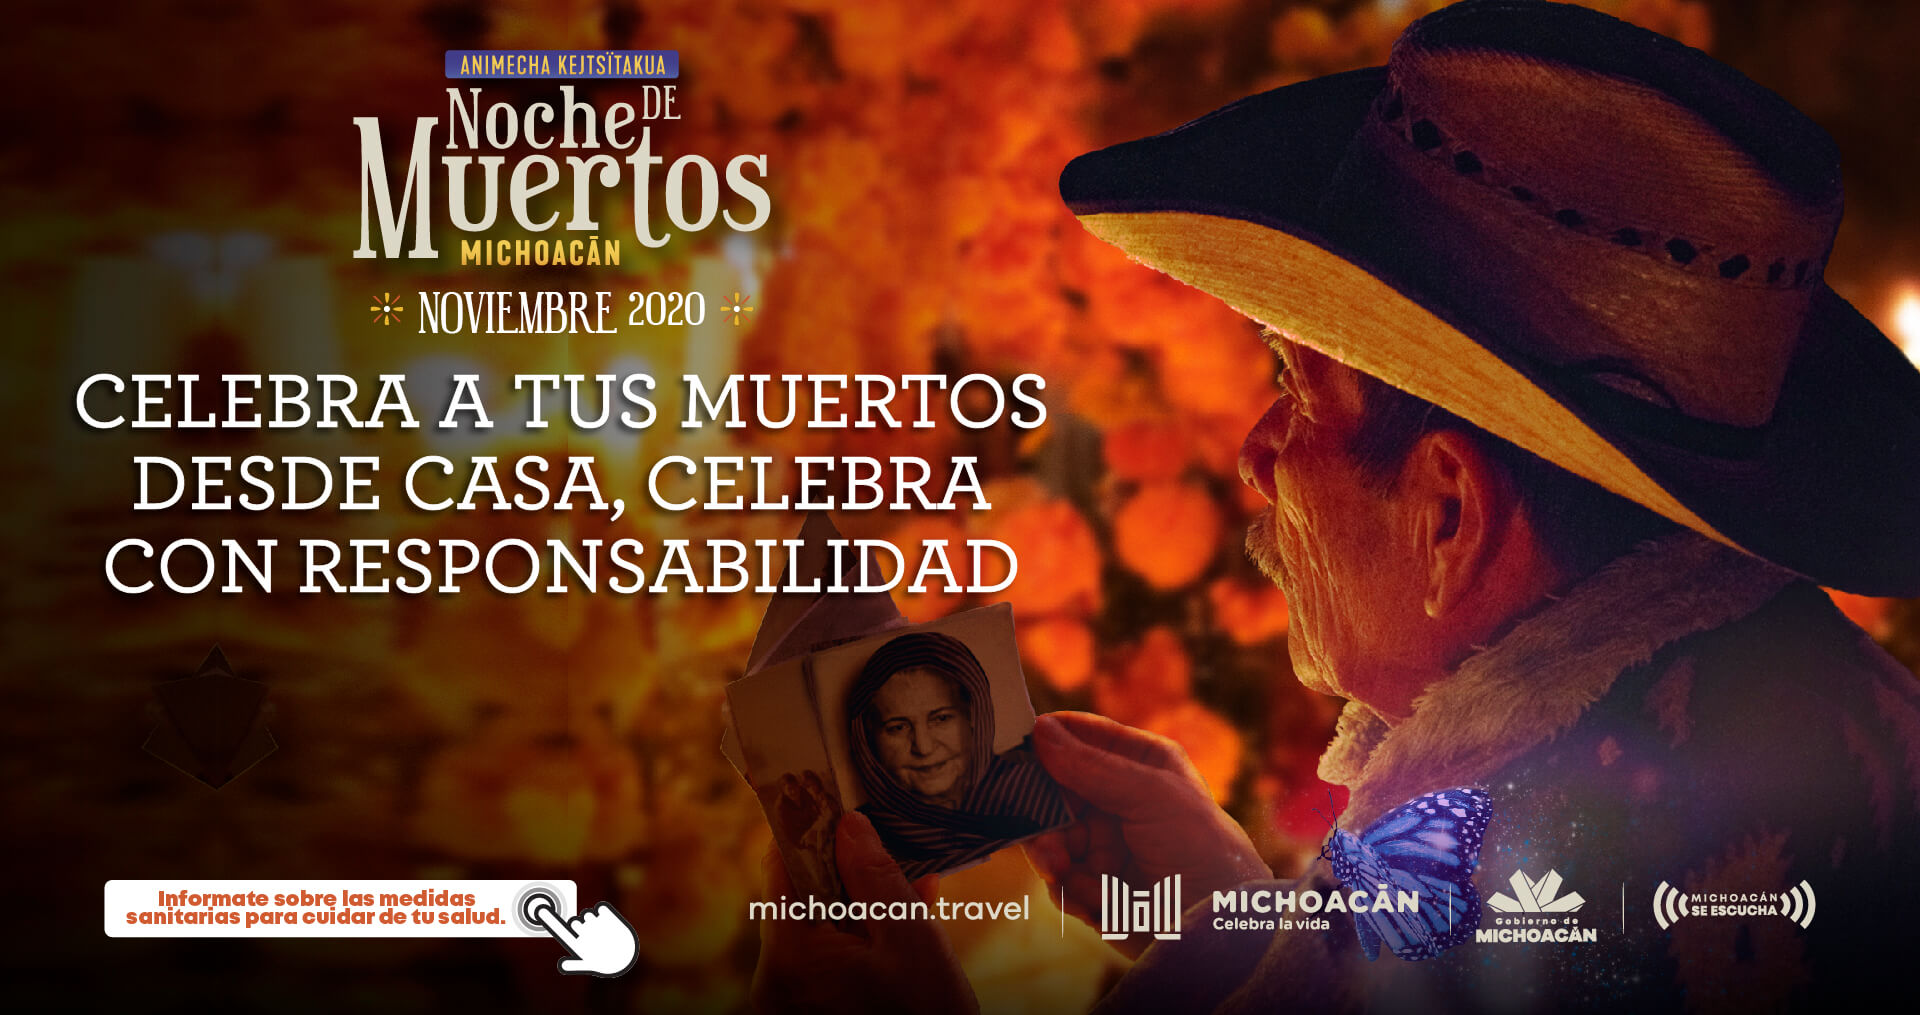 https://michoacan.gob.mx/